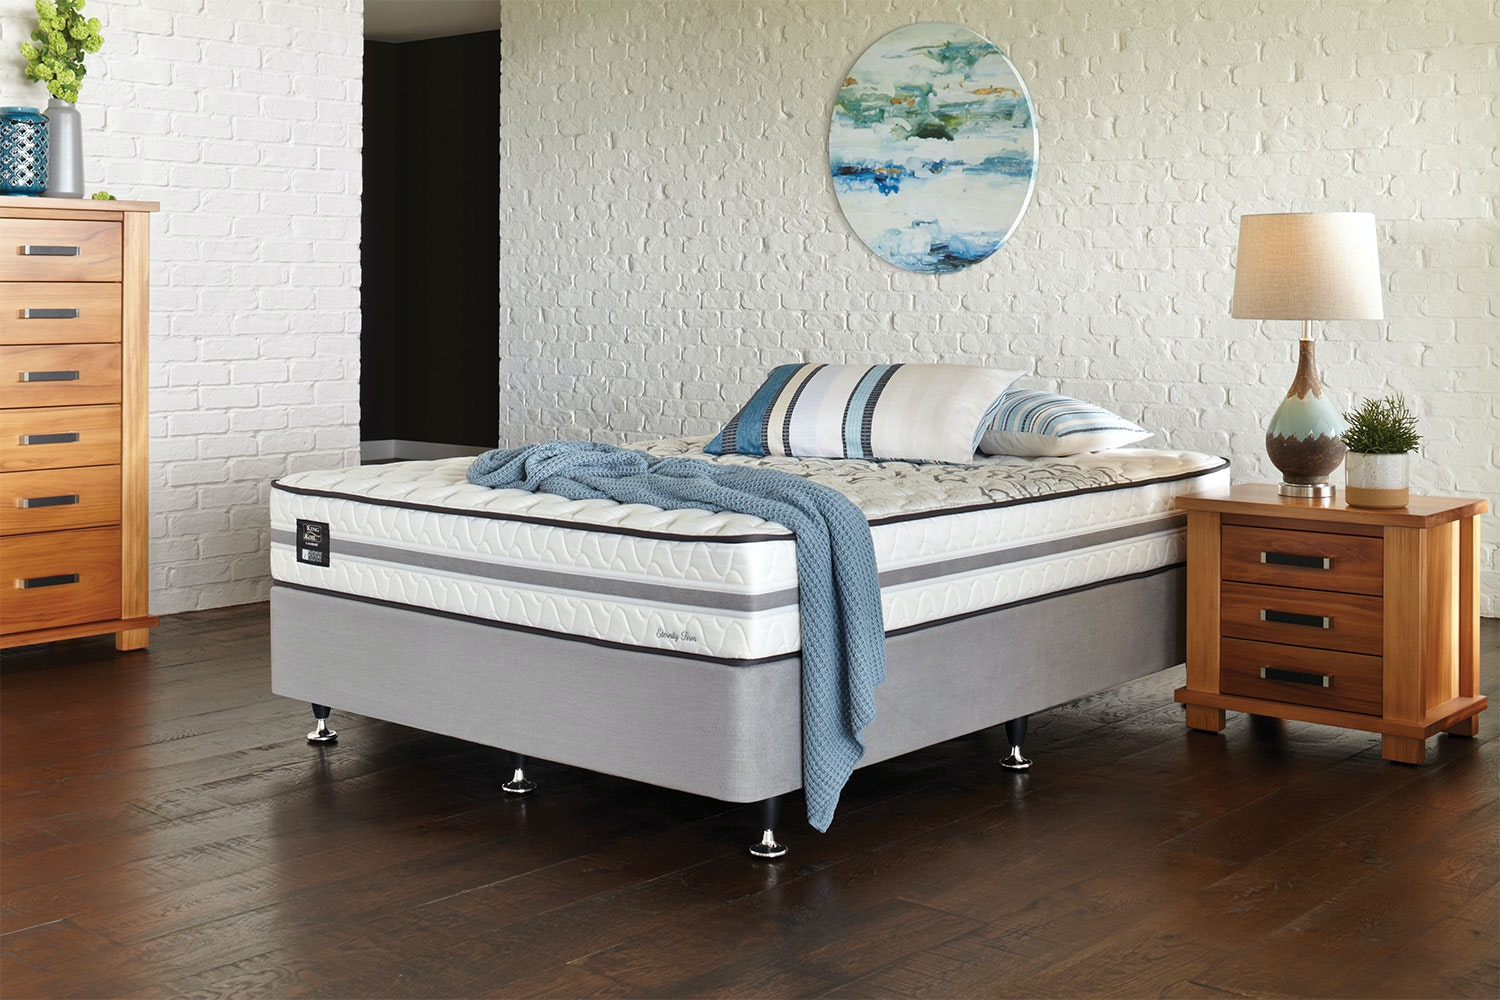 Eternity Firm King Single Bed by King Koil